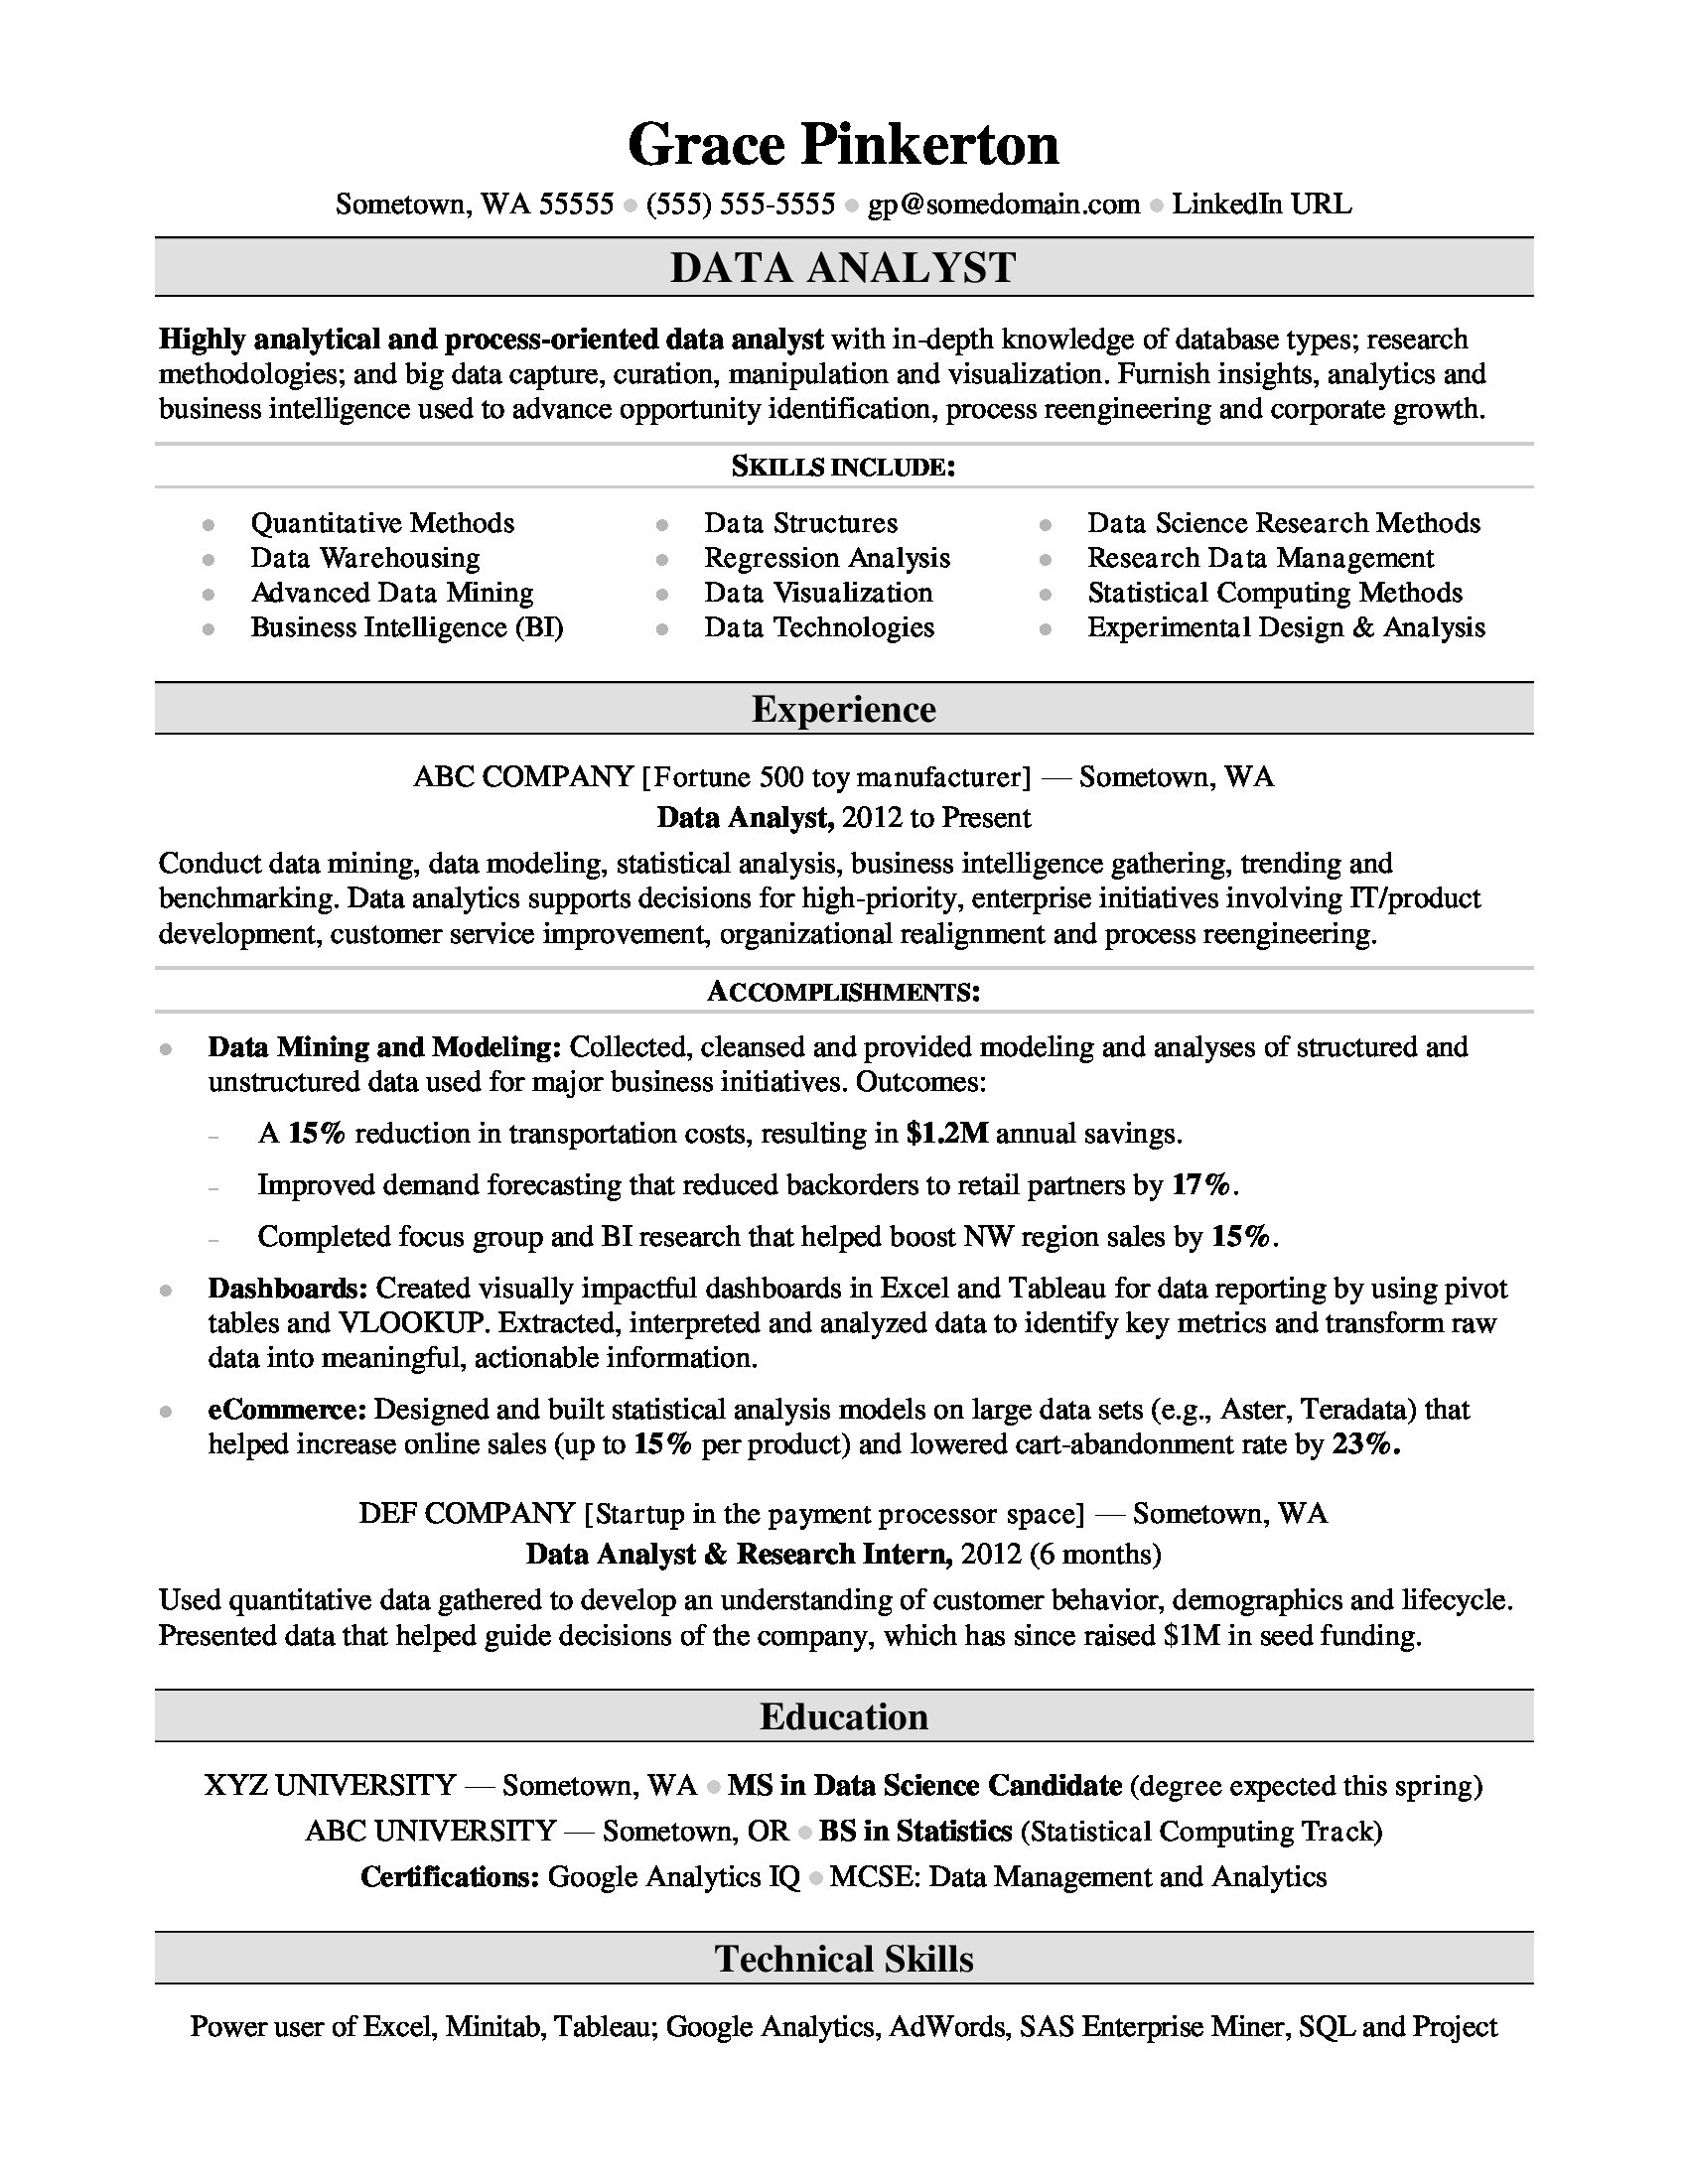 Data analyst resume sample monster data analyst resume sample flashek Choice Image